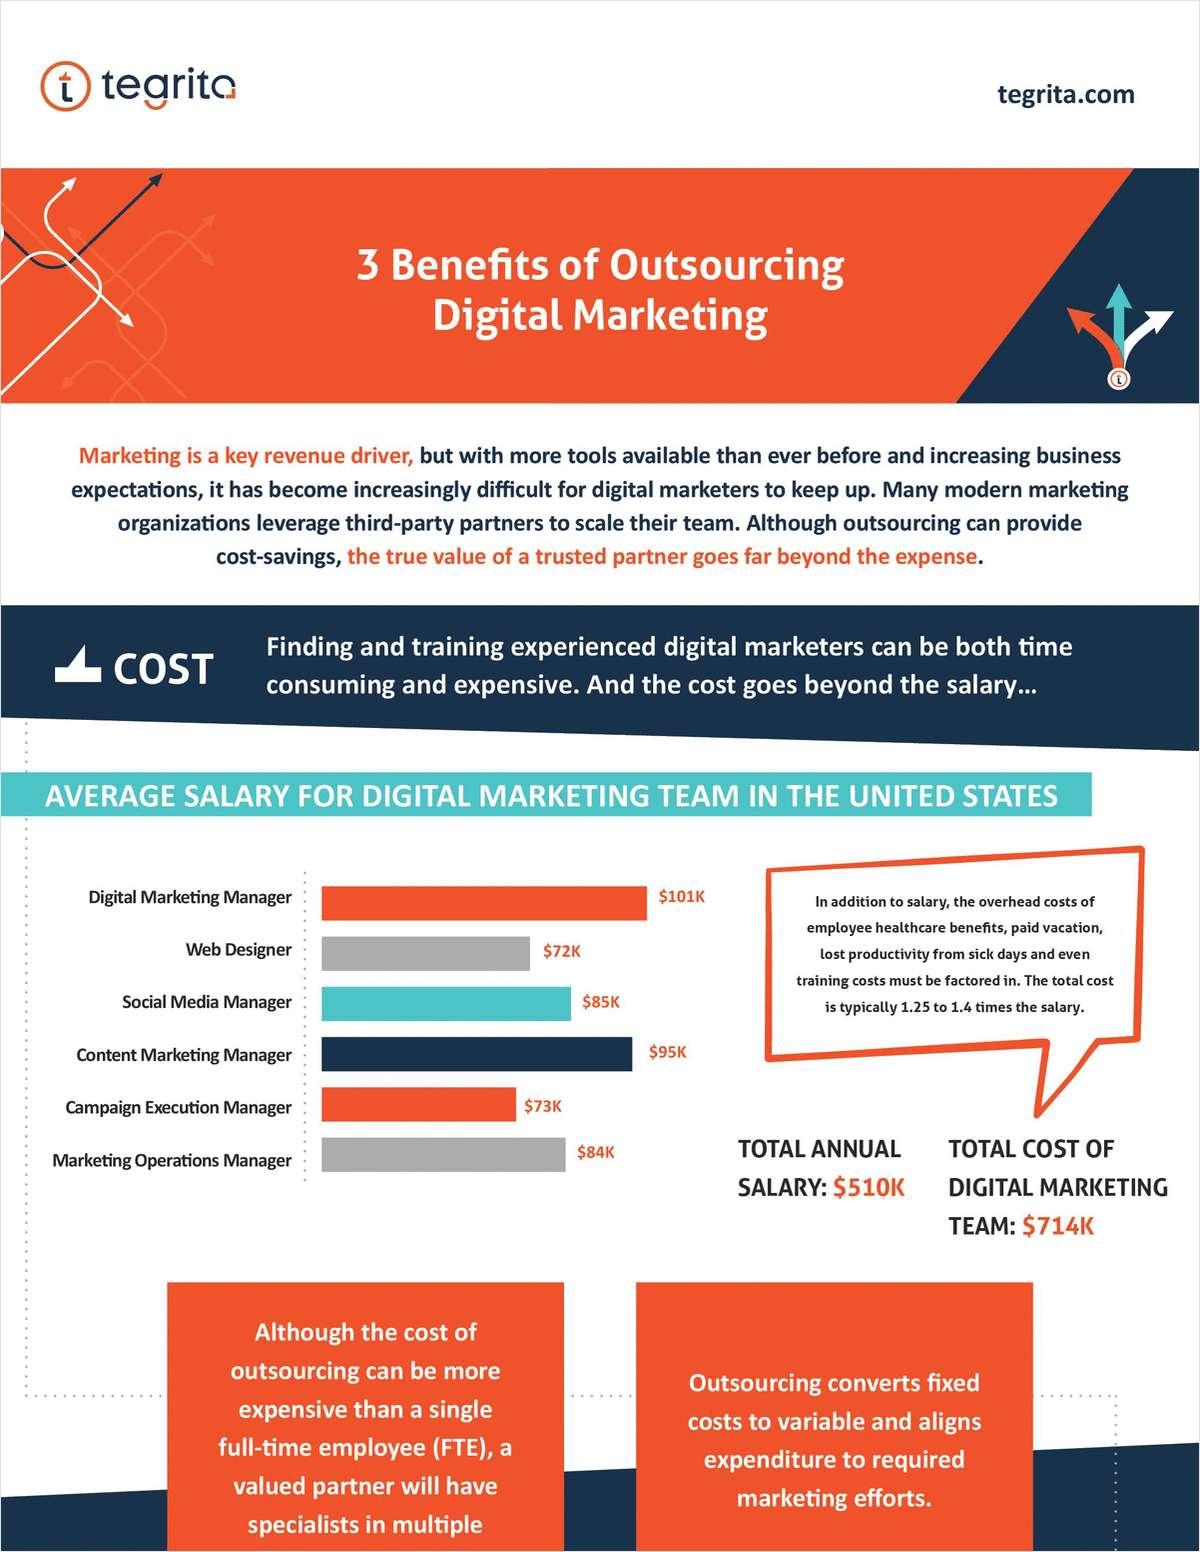 3 Benefits of Outsourced Digital Marketing